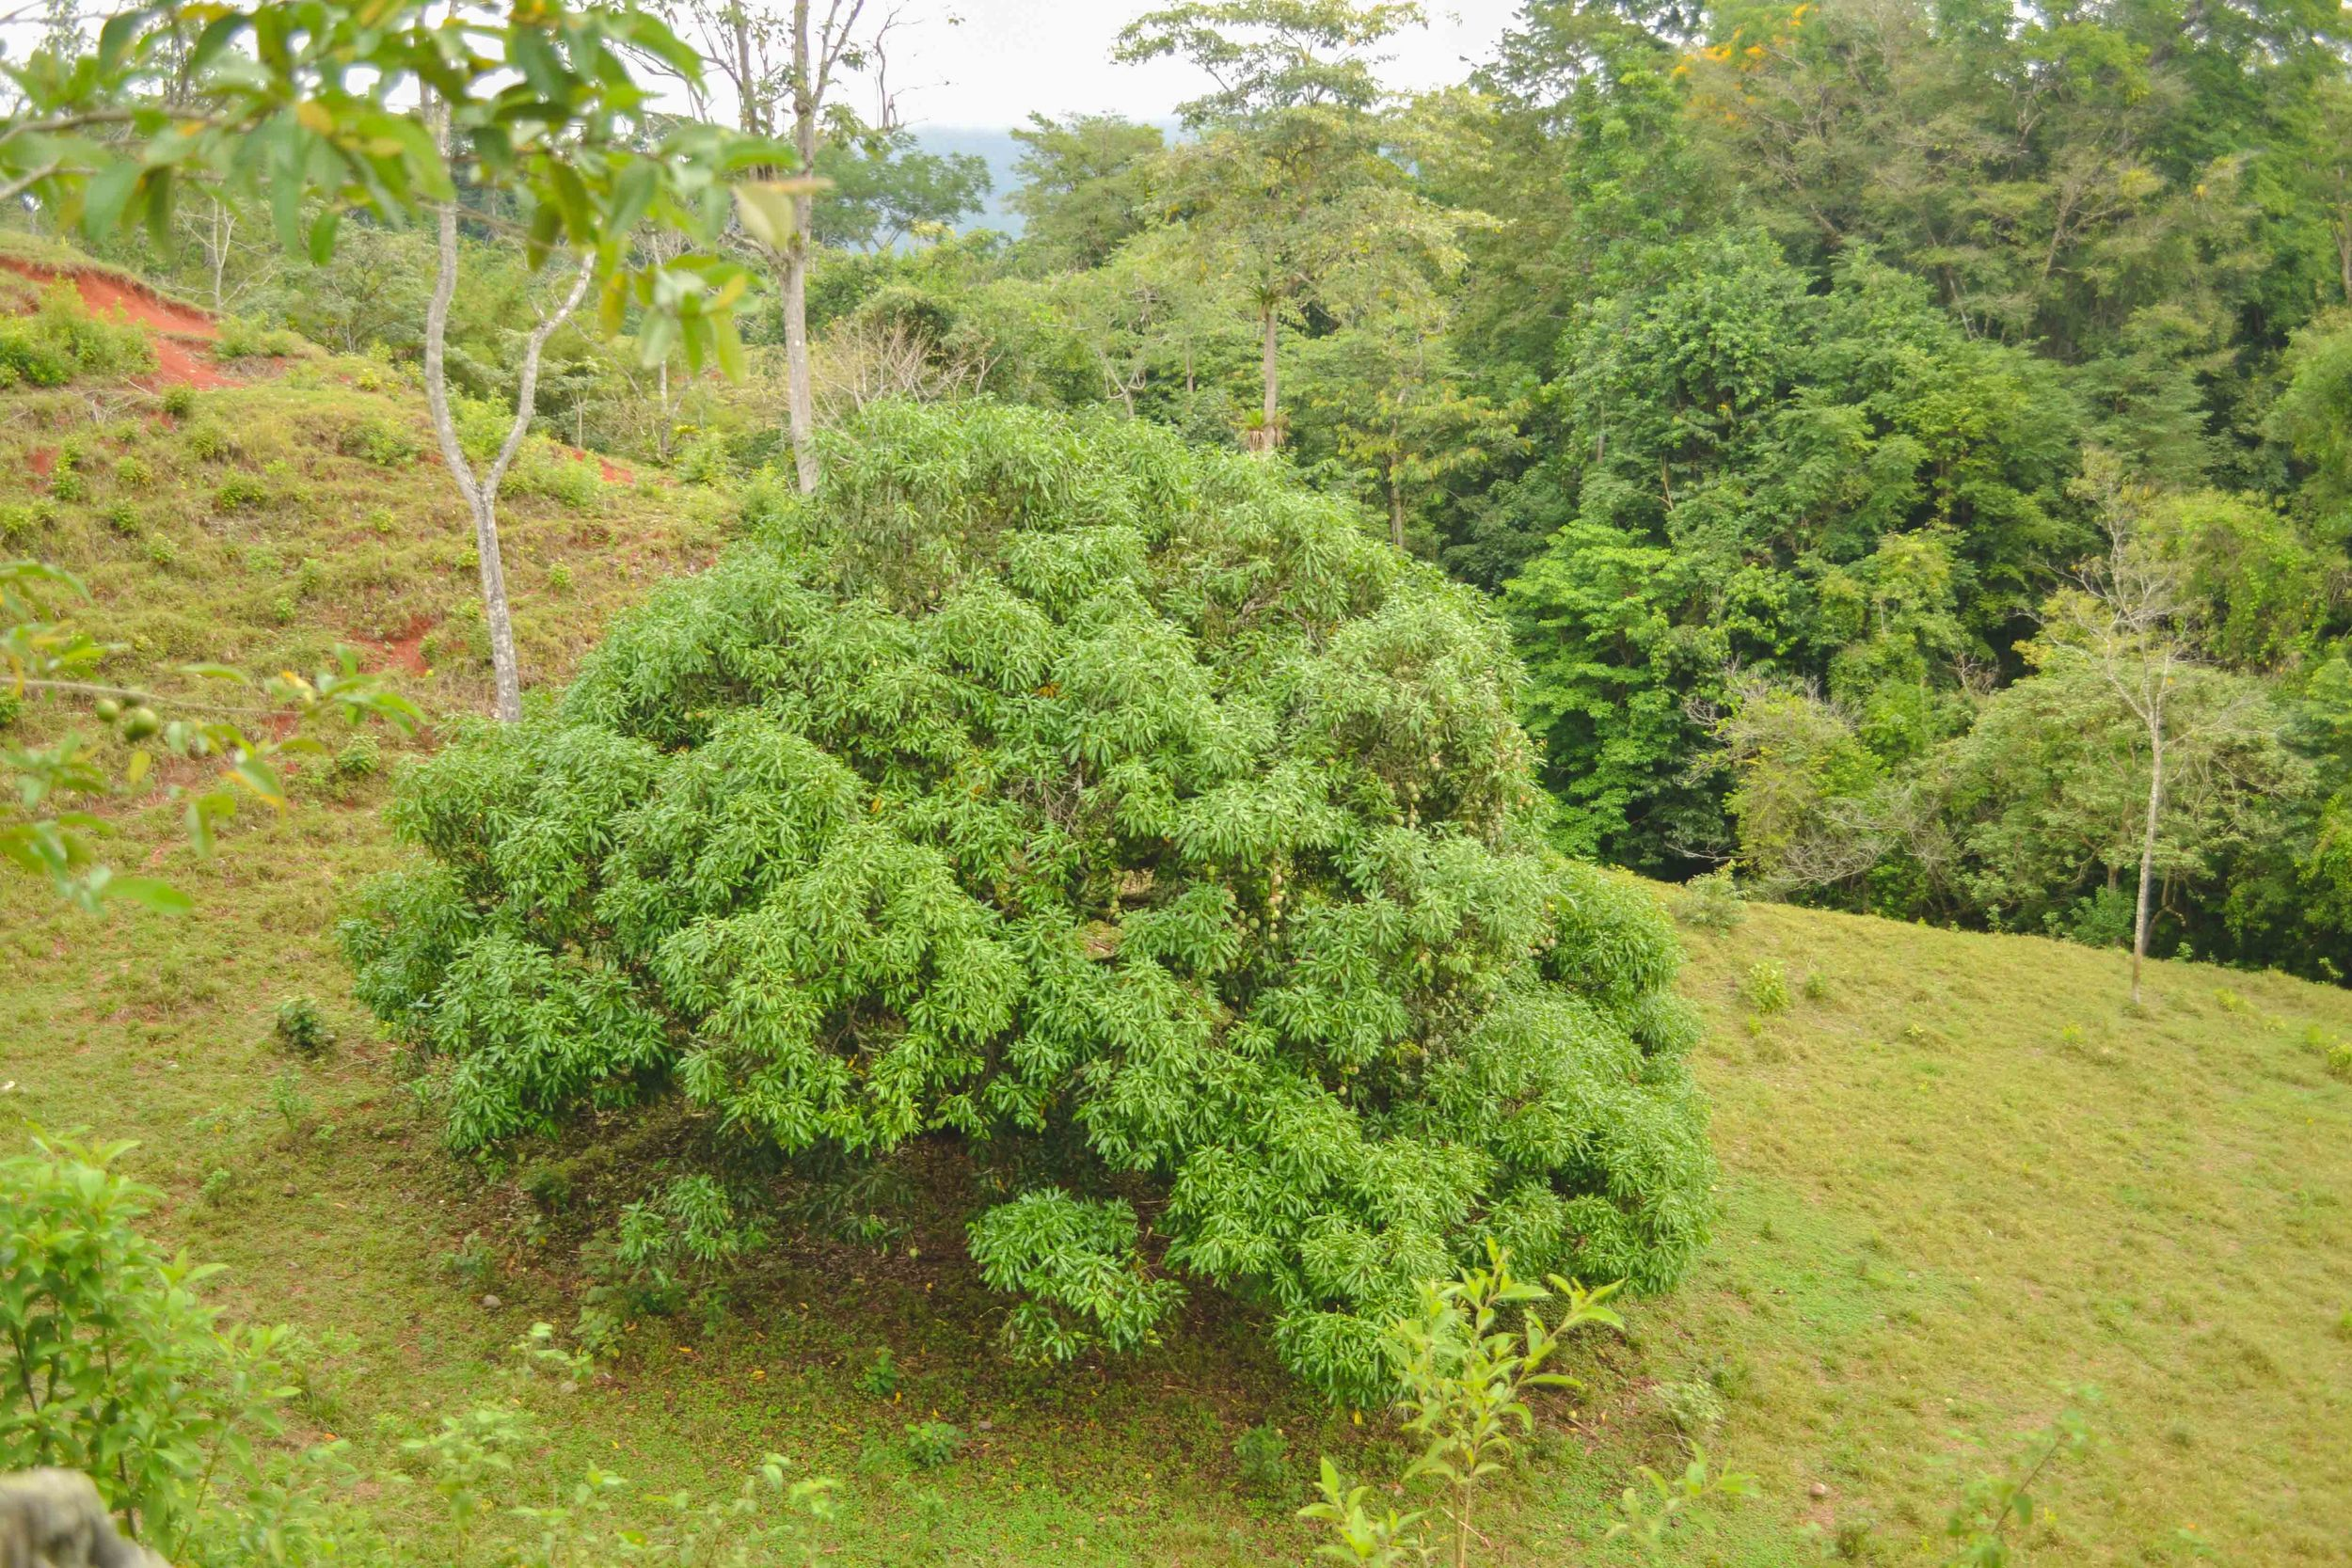 Manga tree: this tree on the neighboring farm's property produced huge female mangos (mangas) nearly the size of a football, so juicy and sweet to eat.